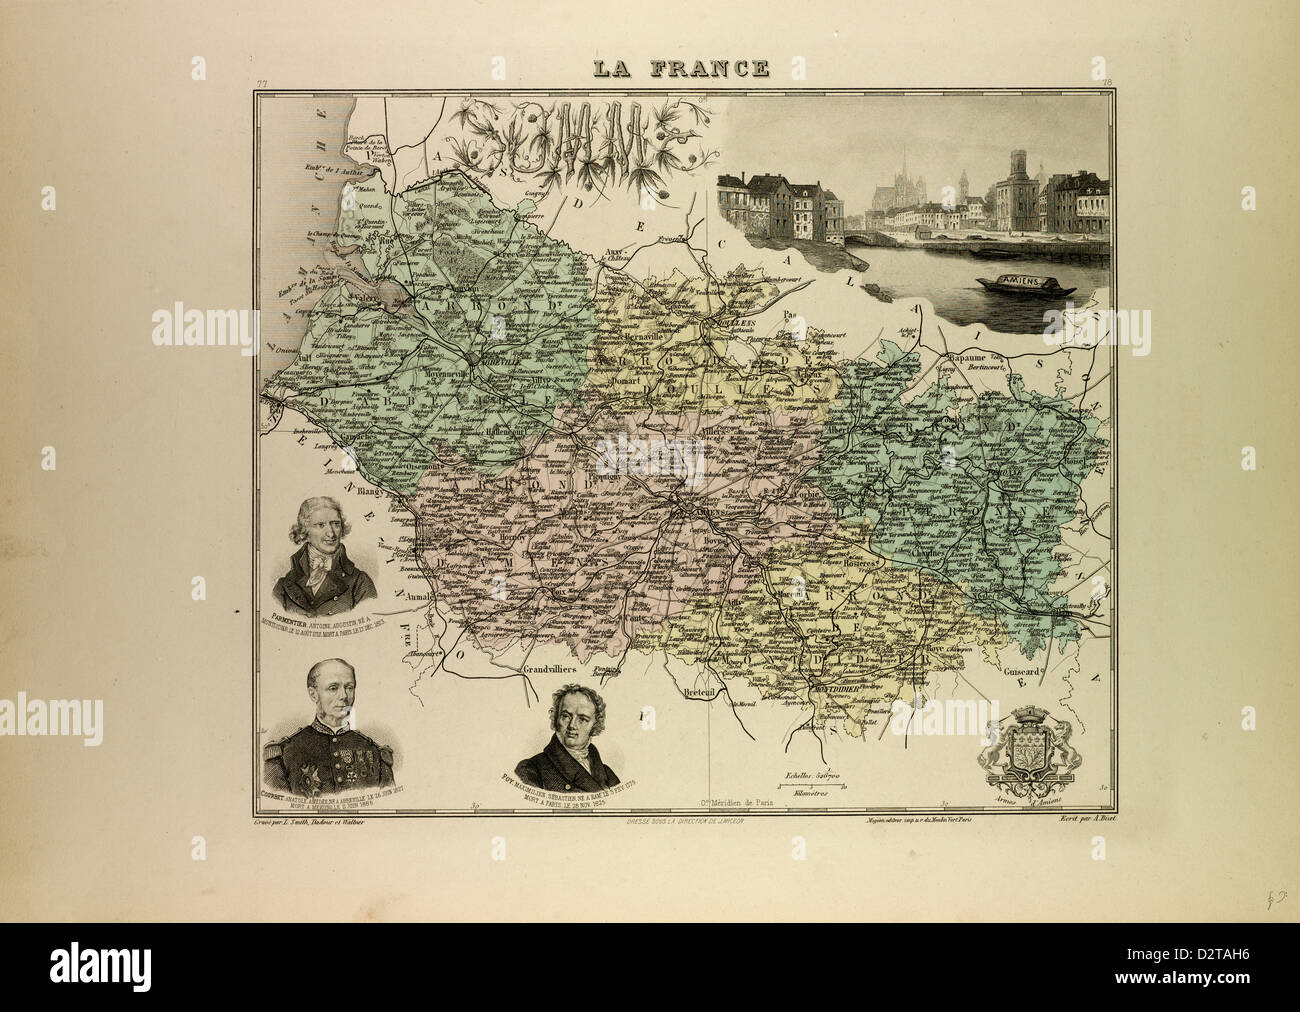 MAP OF SOMME 1896 FRANCE - Stock Image